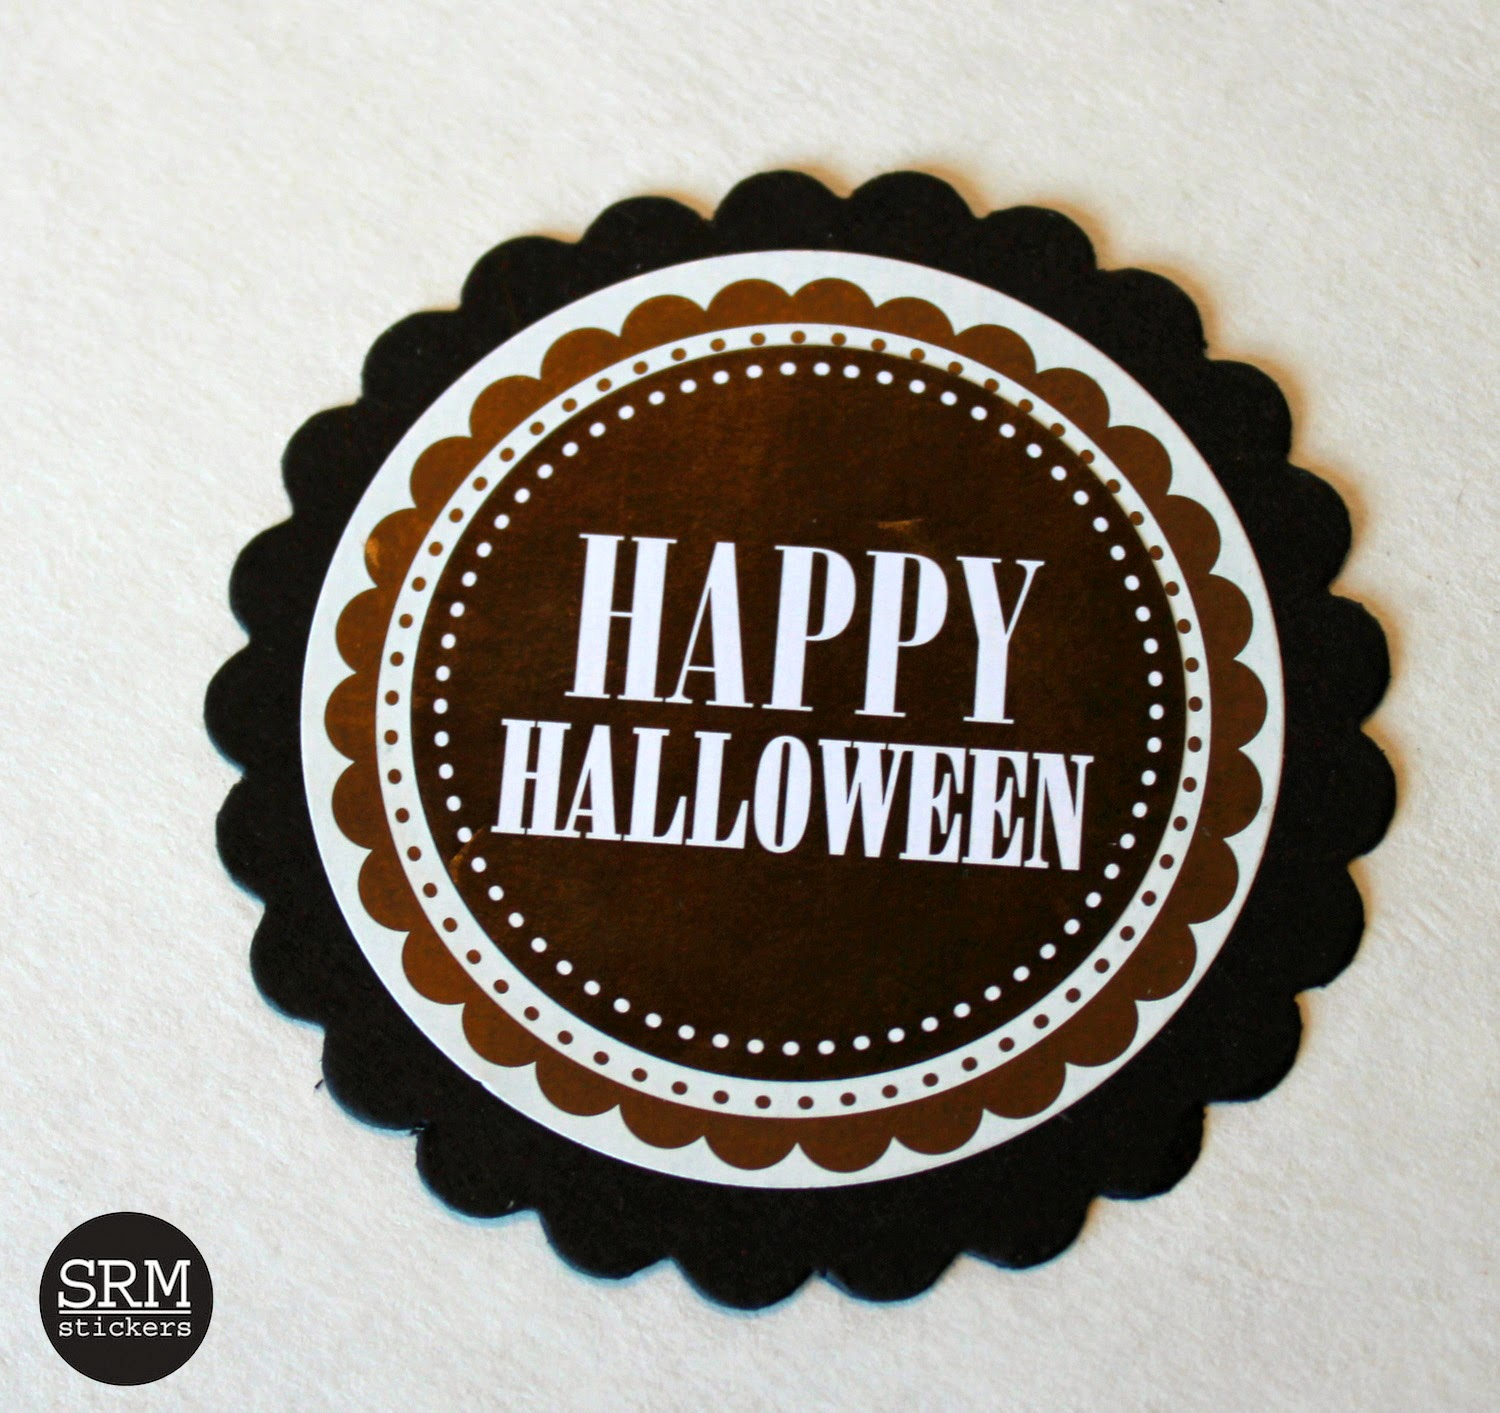 SRM Stickers Blog - Ruffled Crepe Paper Tutorial by Shantaie - #embossed #glassine #bags #Halloween, Labels #stickers #twine #treat bags #favors